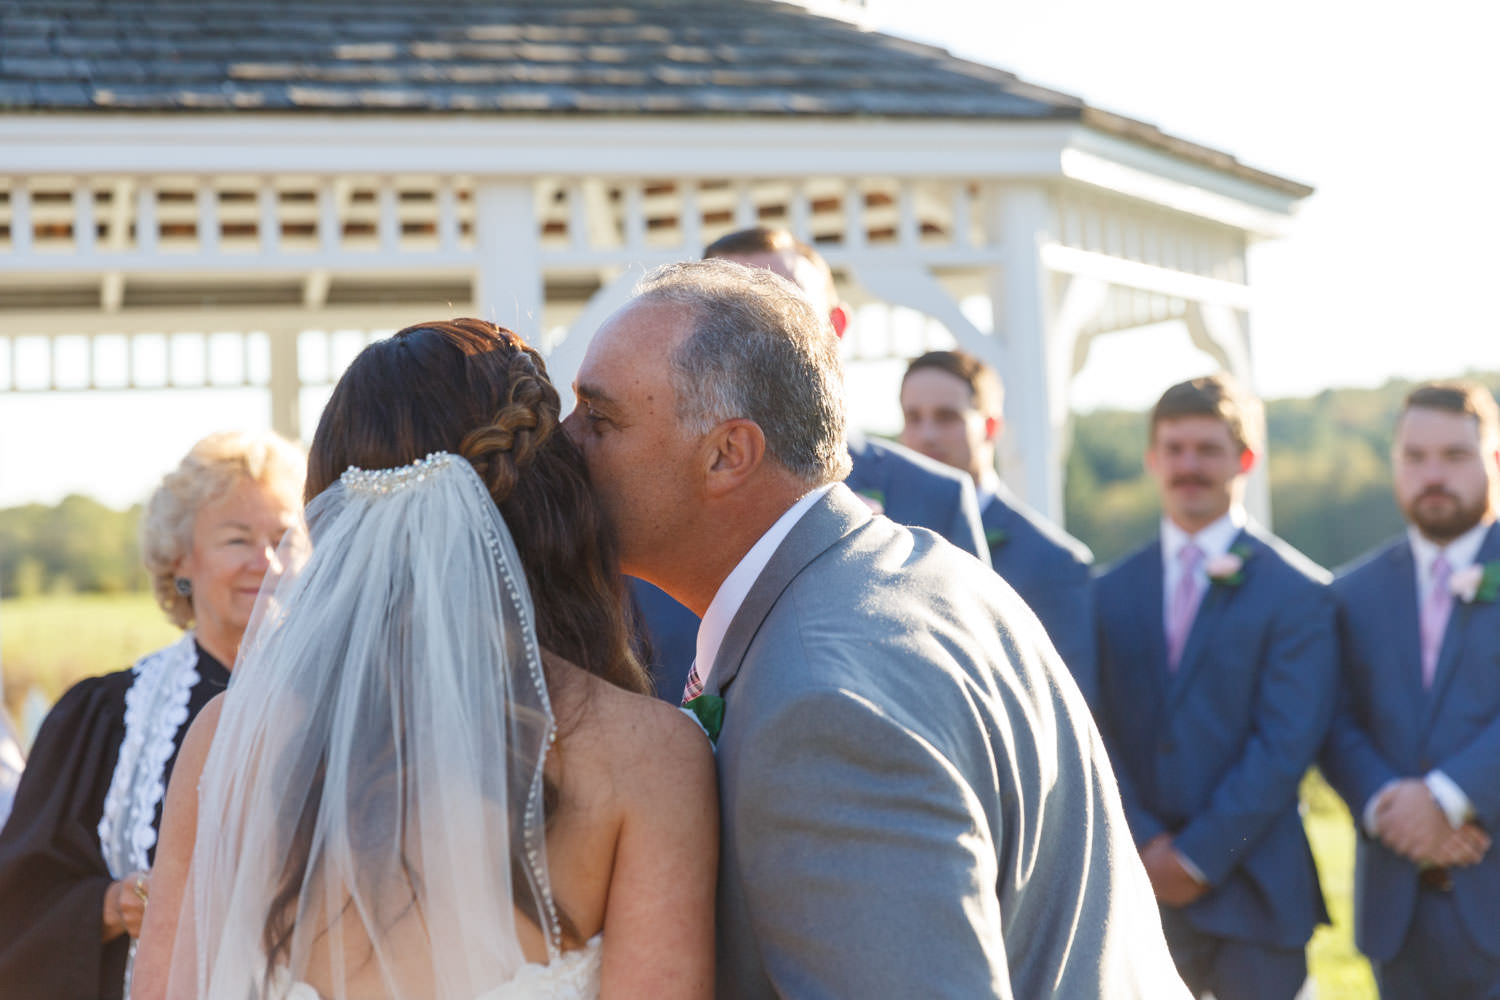 Father of the bride, kissing bride on cheek as he gives her away